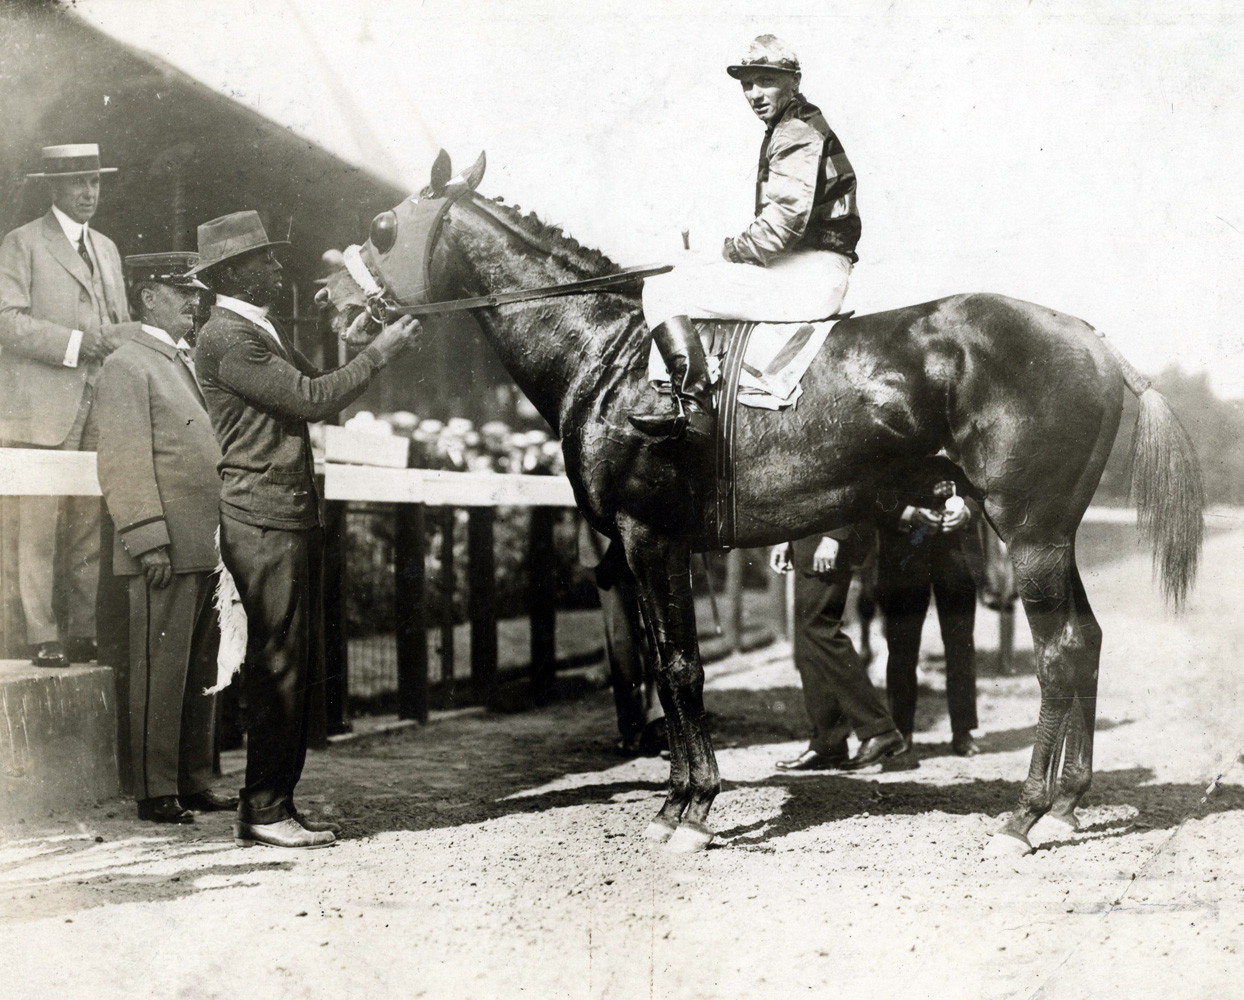 Earl Sande and Sir Barton in the winner's circle at Saratoga (Museum Collection)